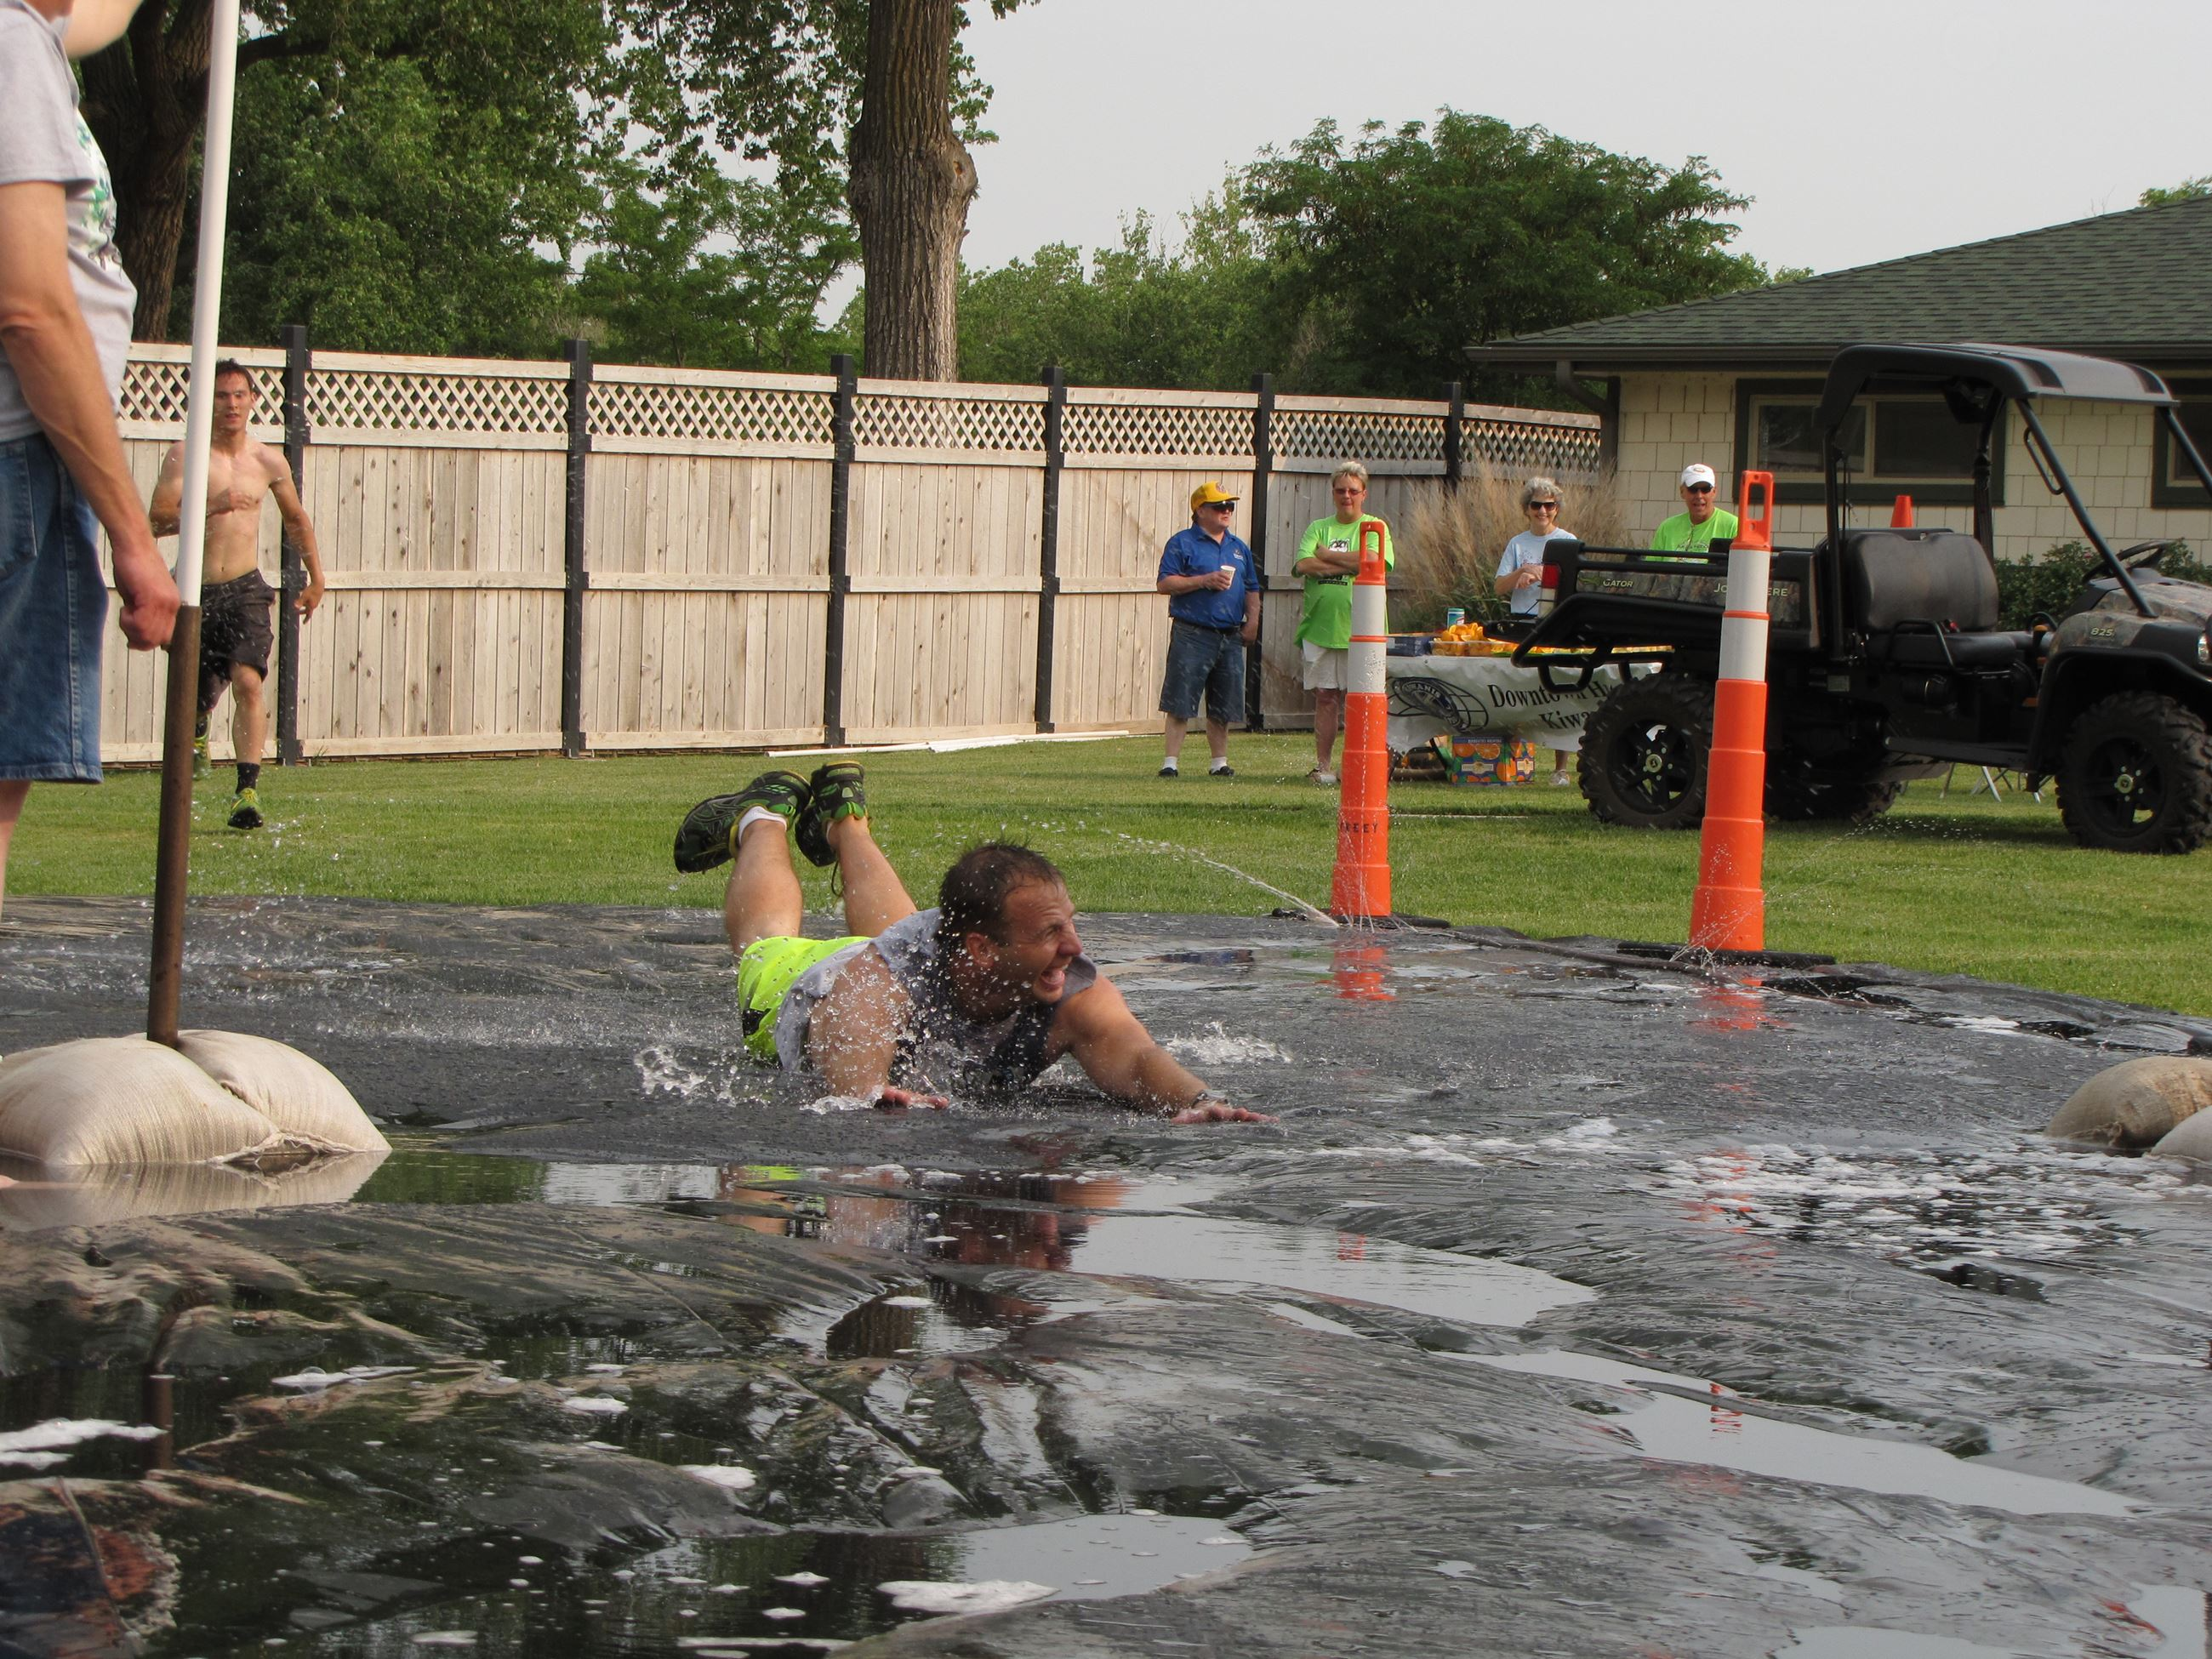 Man Sliding on Slip n' Slide